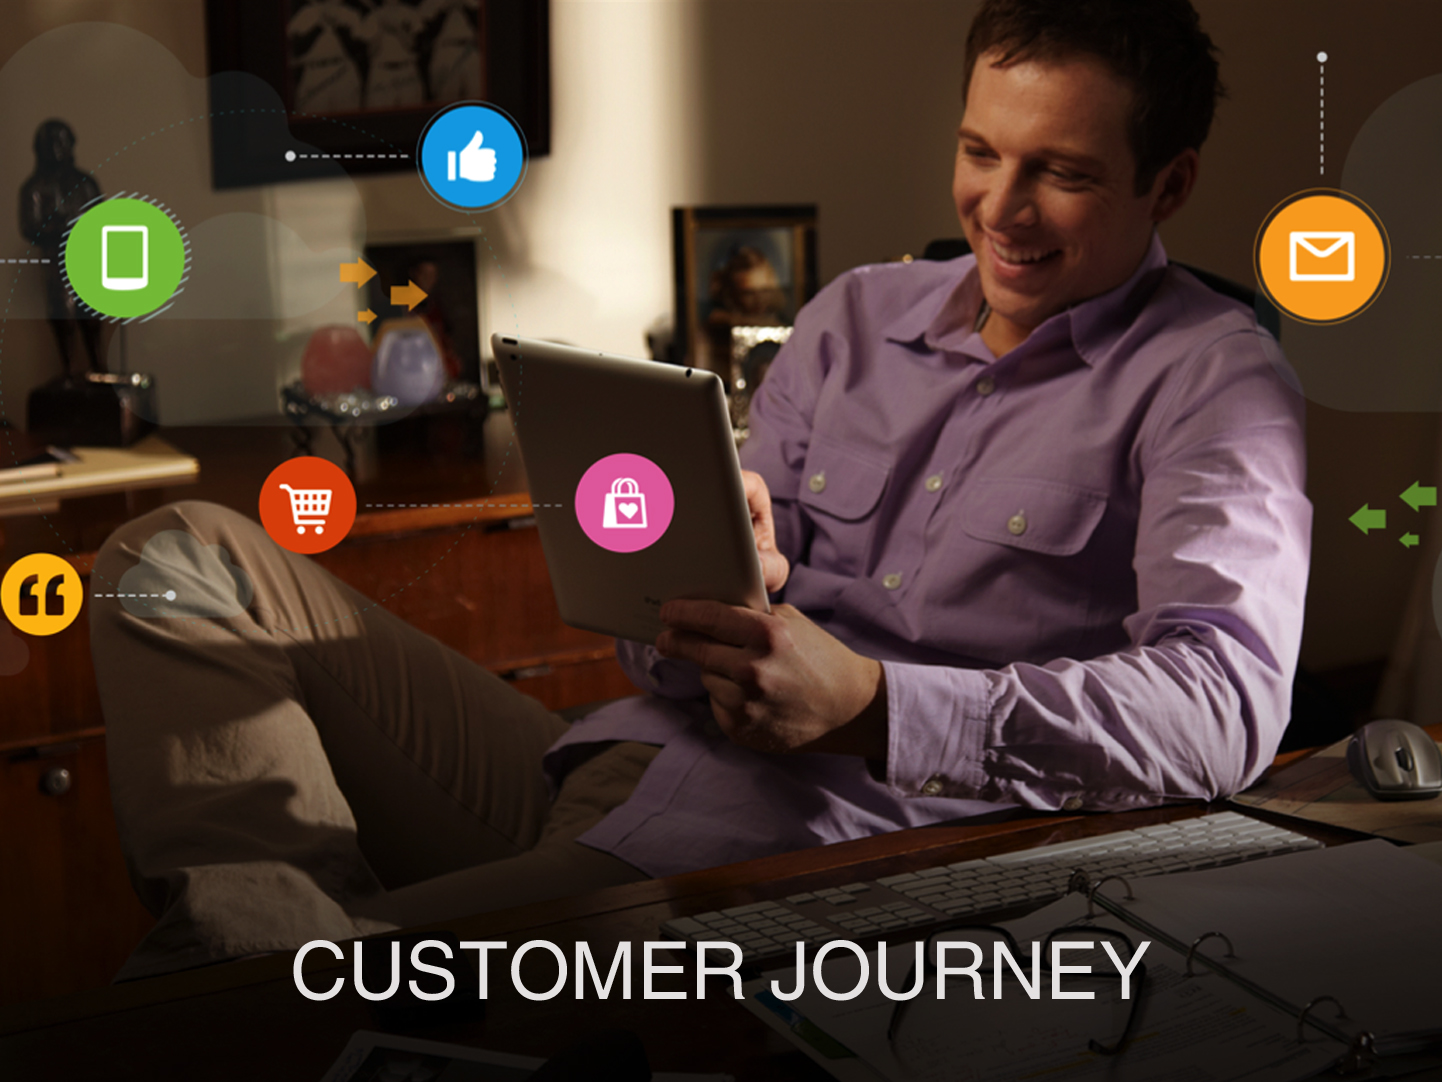 okaidi-customer-journey-madmetrics-keyade